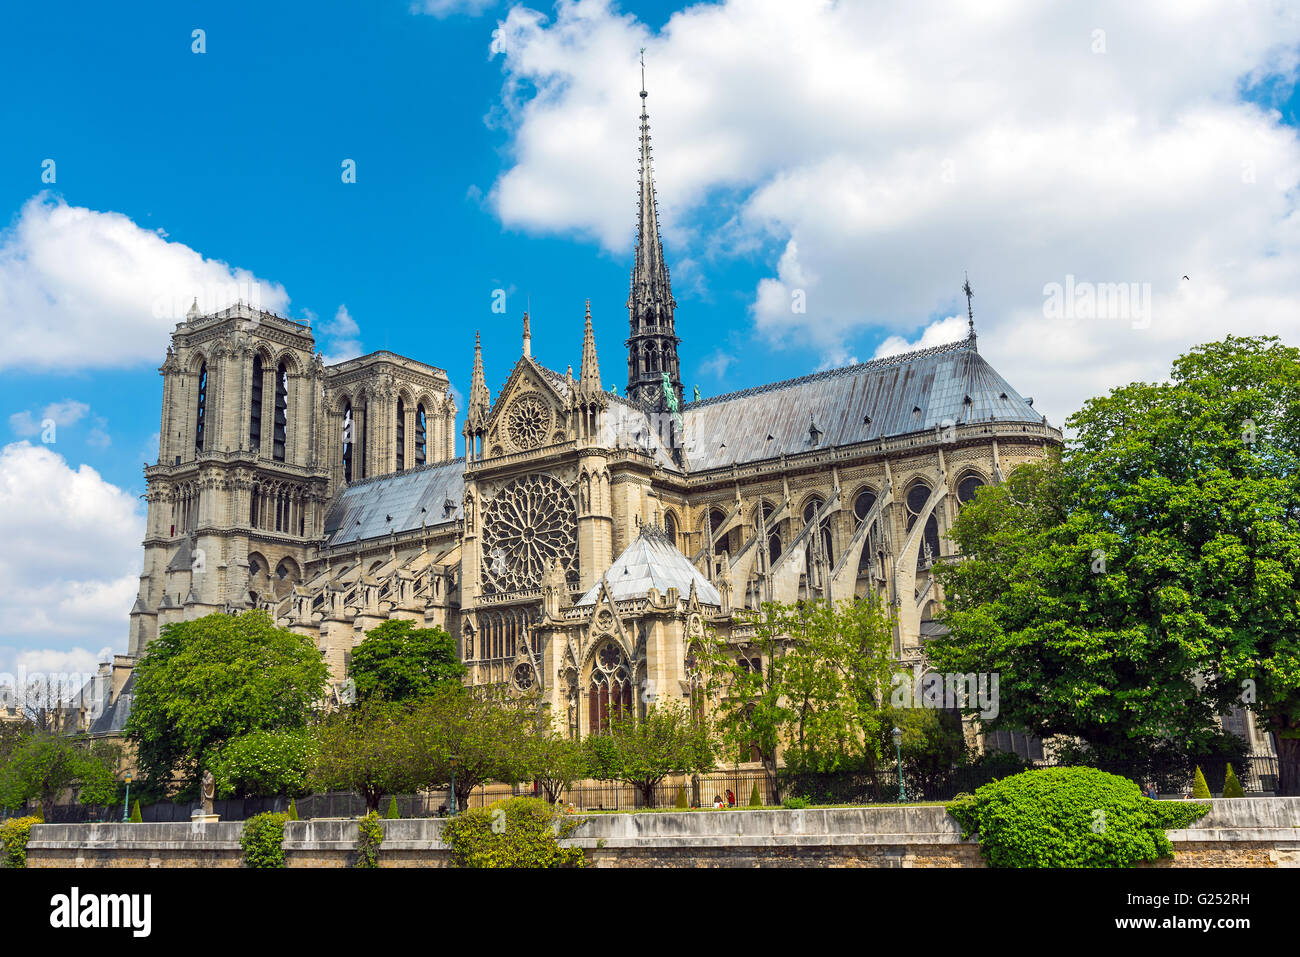 The famous Notre Dame cathedral in Paris on a summer day - Stock Image